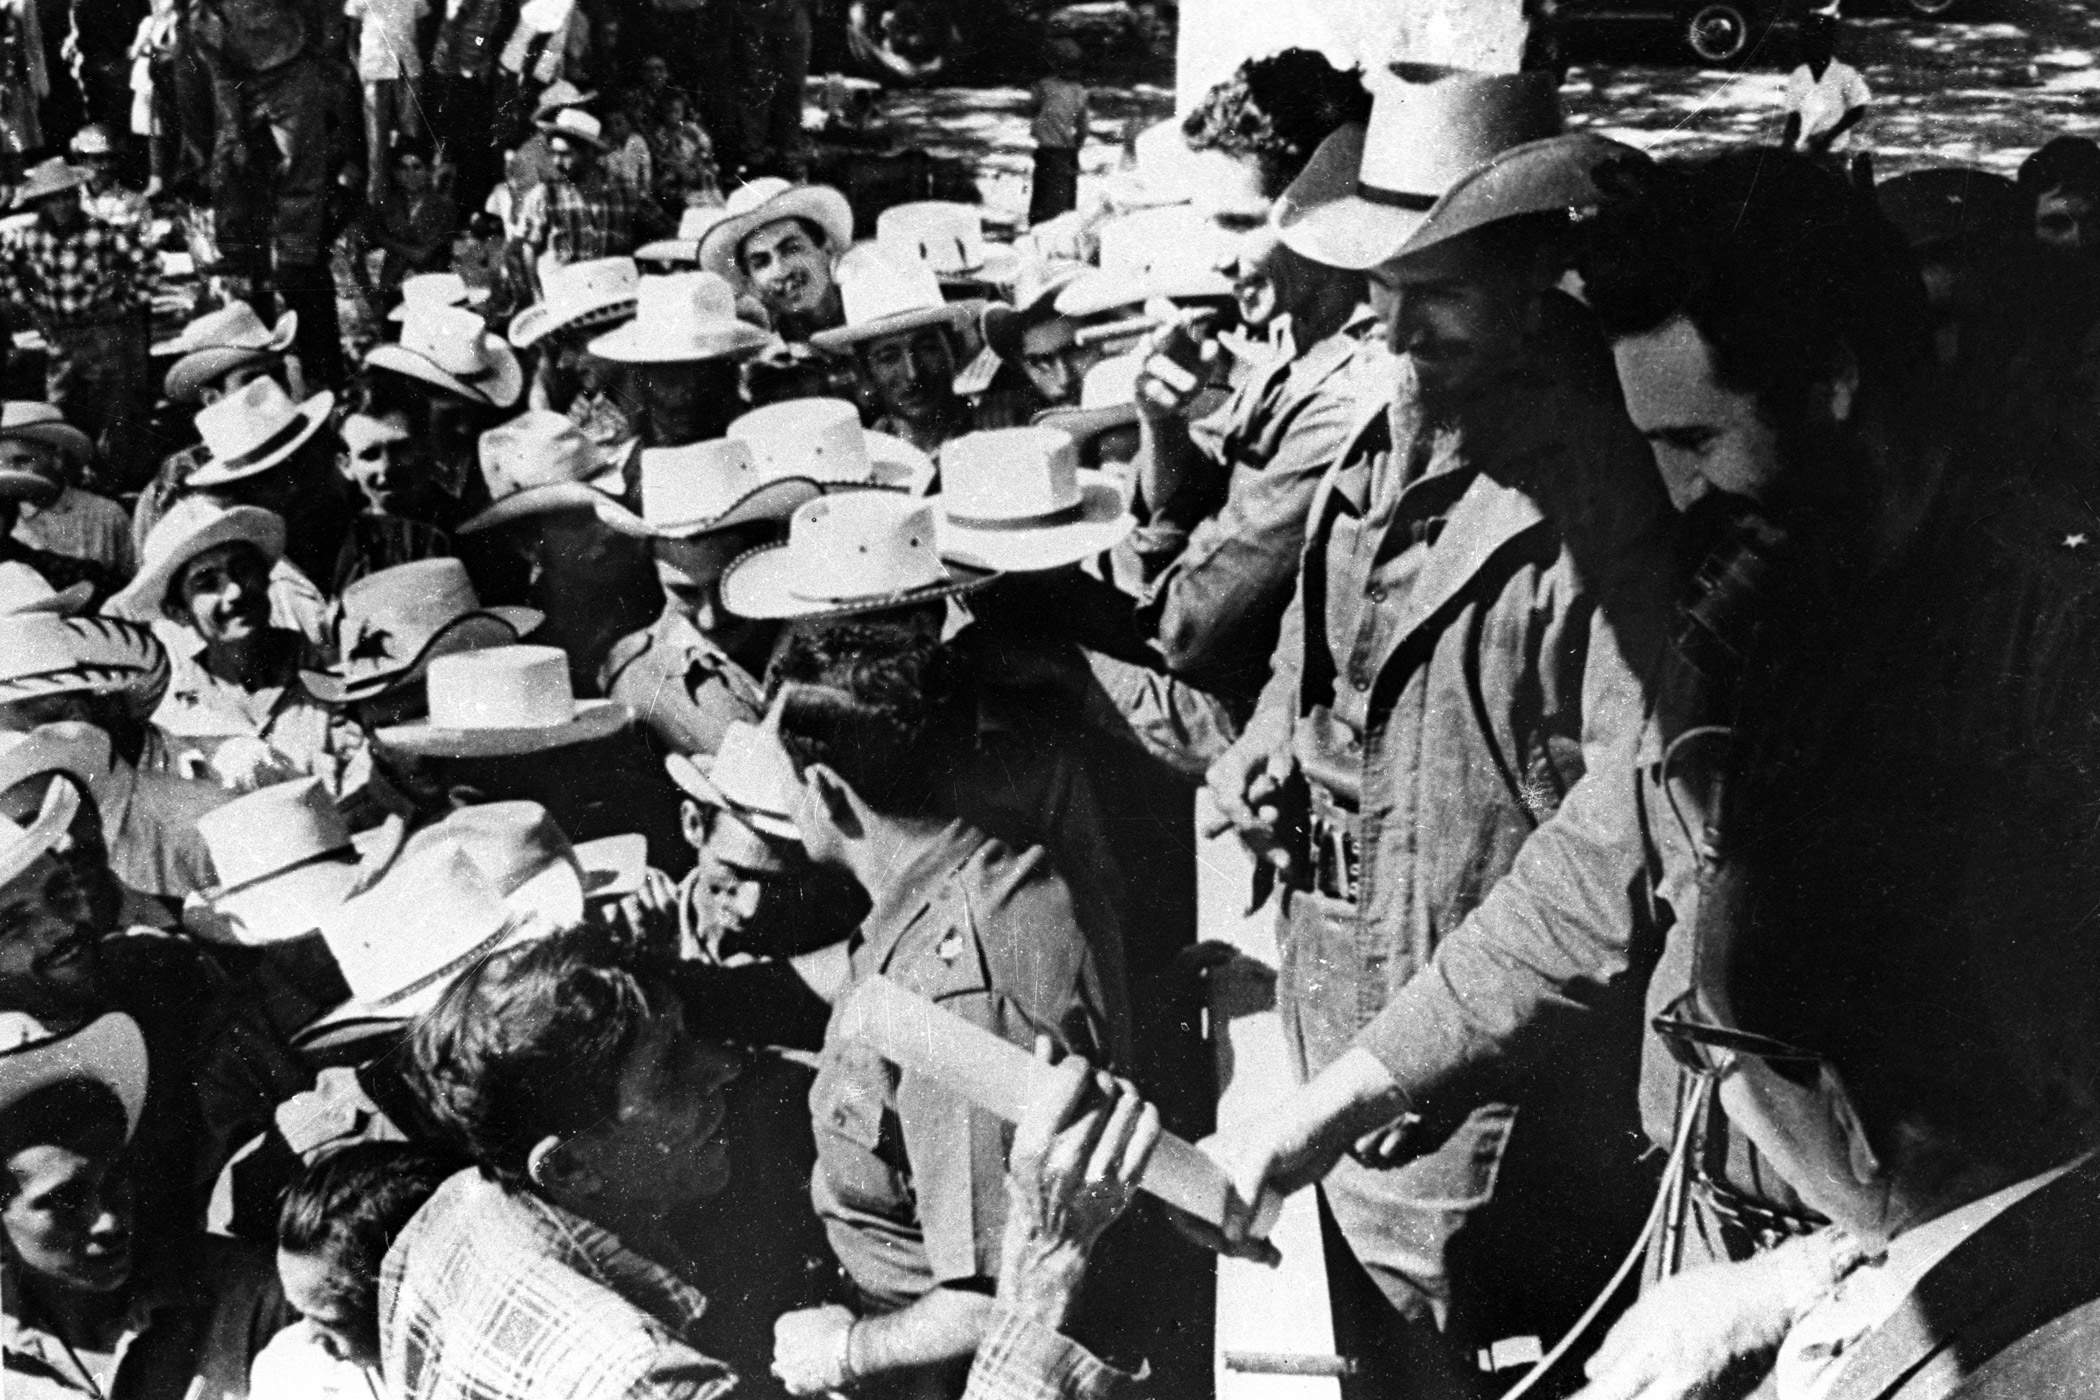 Cuban President Fidel Castro, right, delivers the property title of a land to a peasant following agrarian reform in Cuba in 1960.